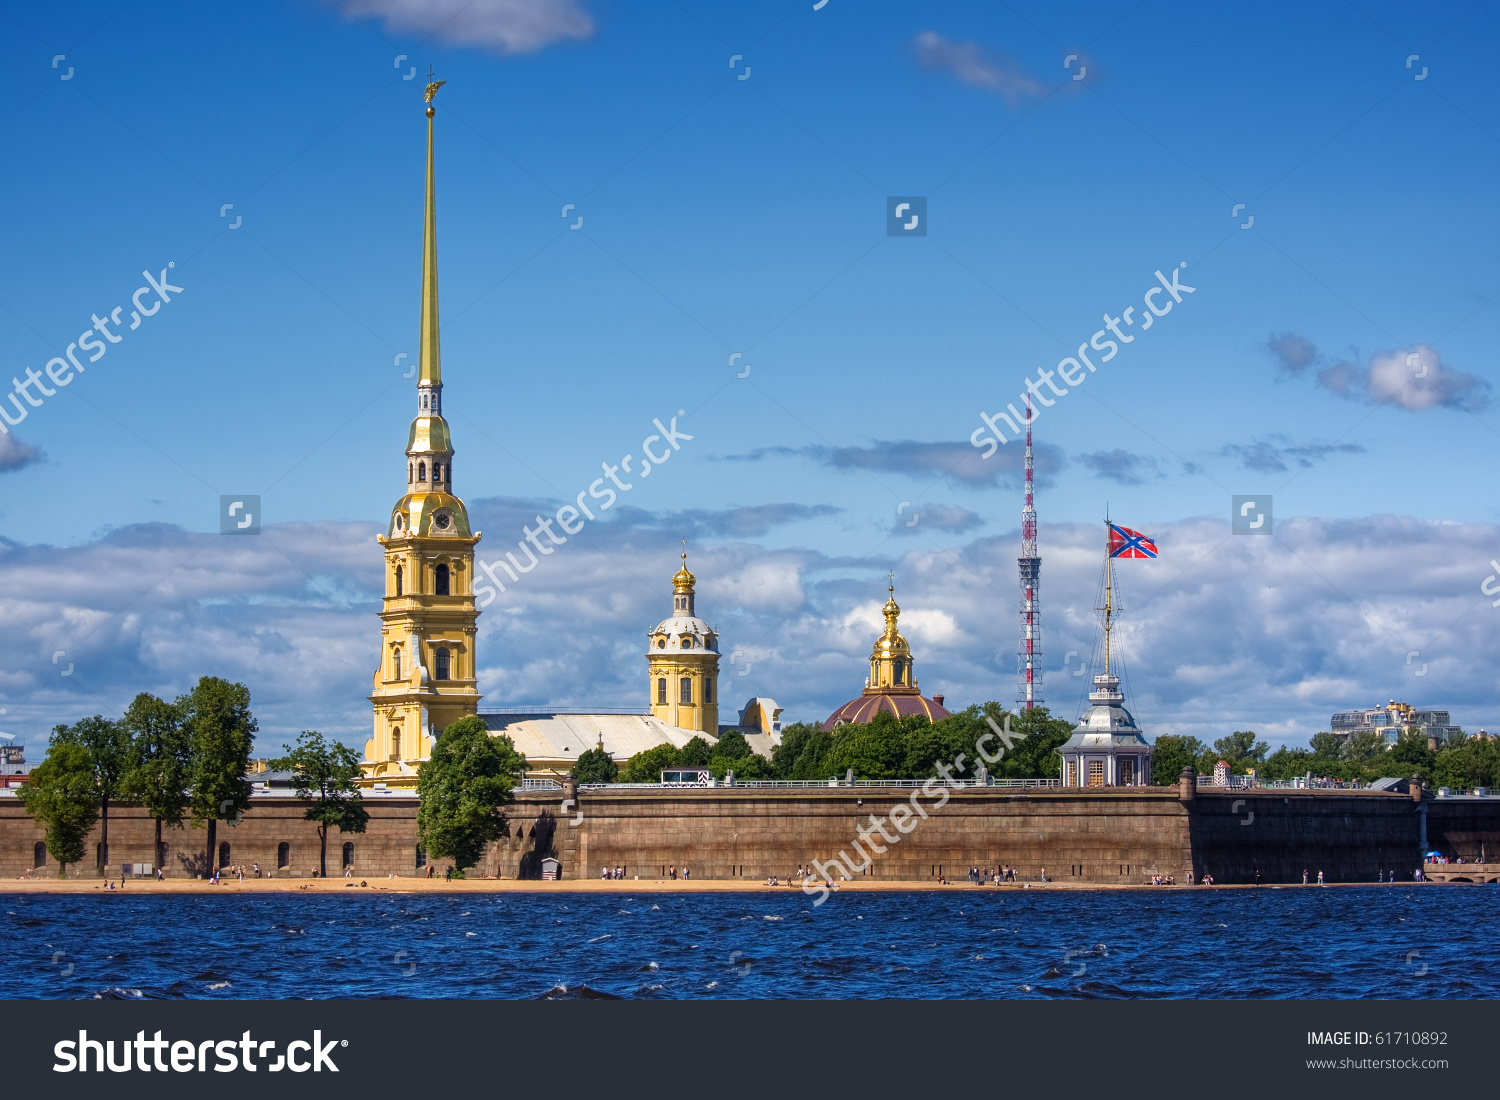 The Peter And Paul Fortress, St.Petersburg, Russia Stock Photo.